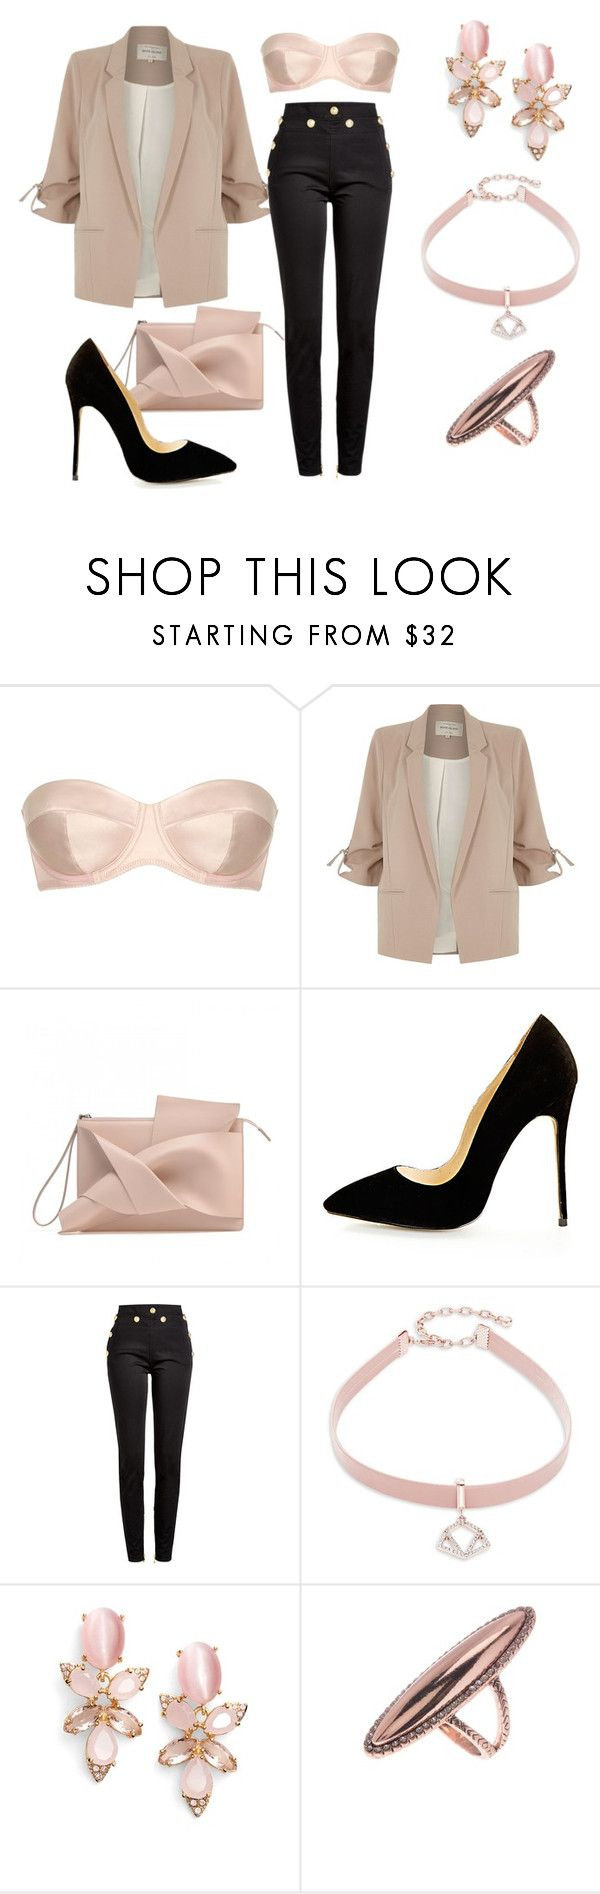 """""""Champagne chic"""" by elisa-itgirl ❤ liked on Polyvore featuring L'Agent By Agent Provocateur, River Island, Balmain, Design Lab, Kate Spade and House of Harlow 1960"""